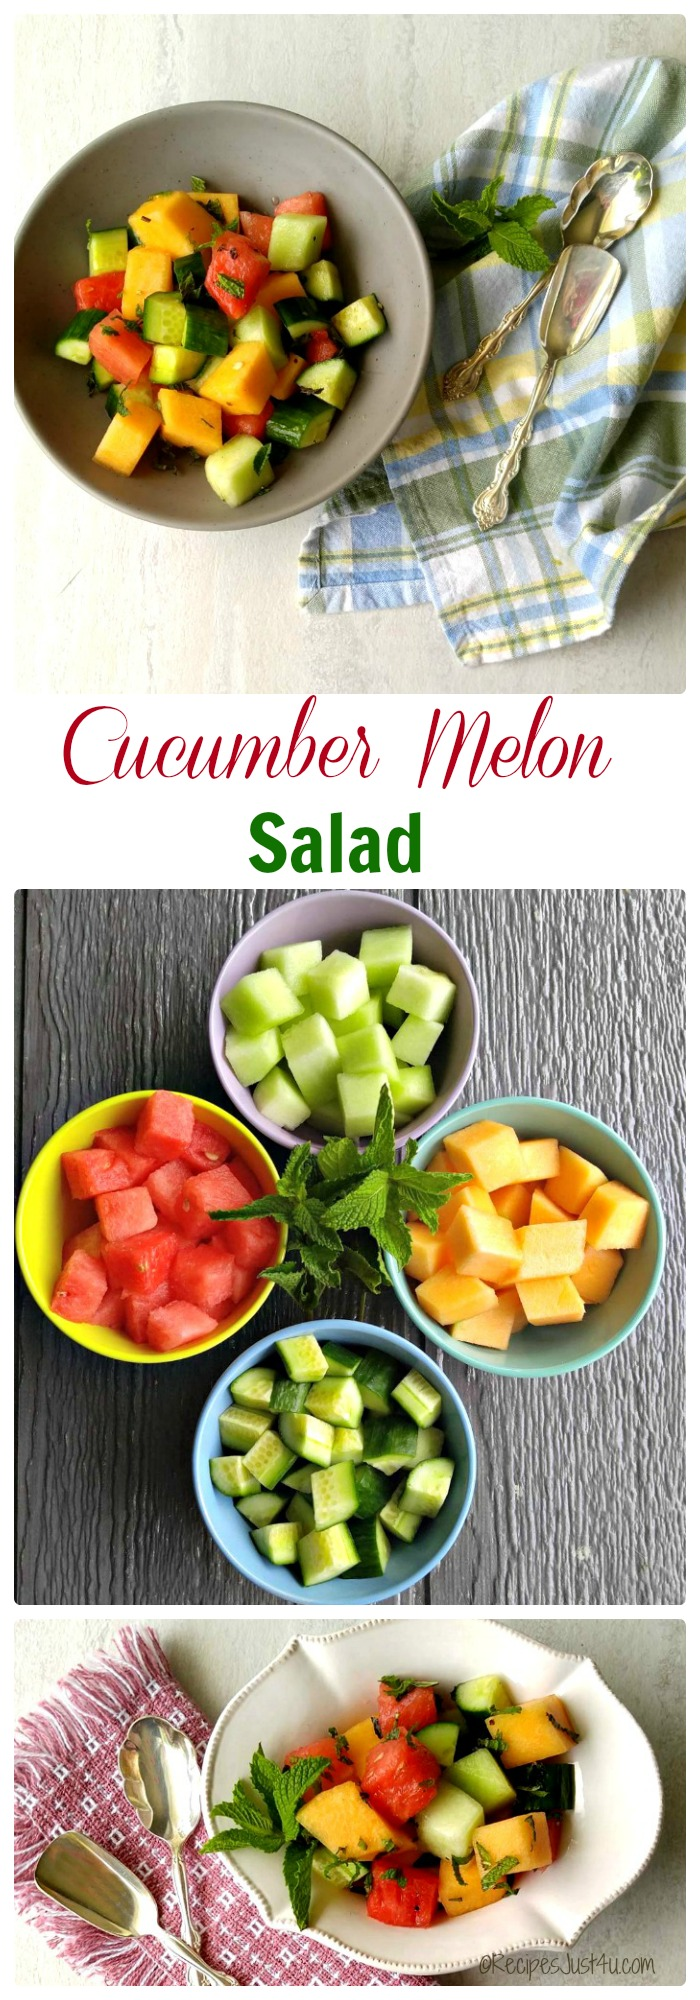 This refreshing cucumber melon salad is the perfect side dish to serve for those summer time days when the heat makes cooking in the kitchen hard to do. recipesjust4u.com